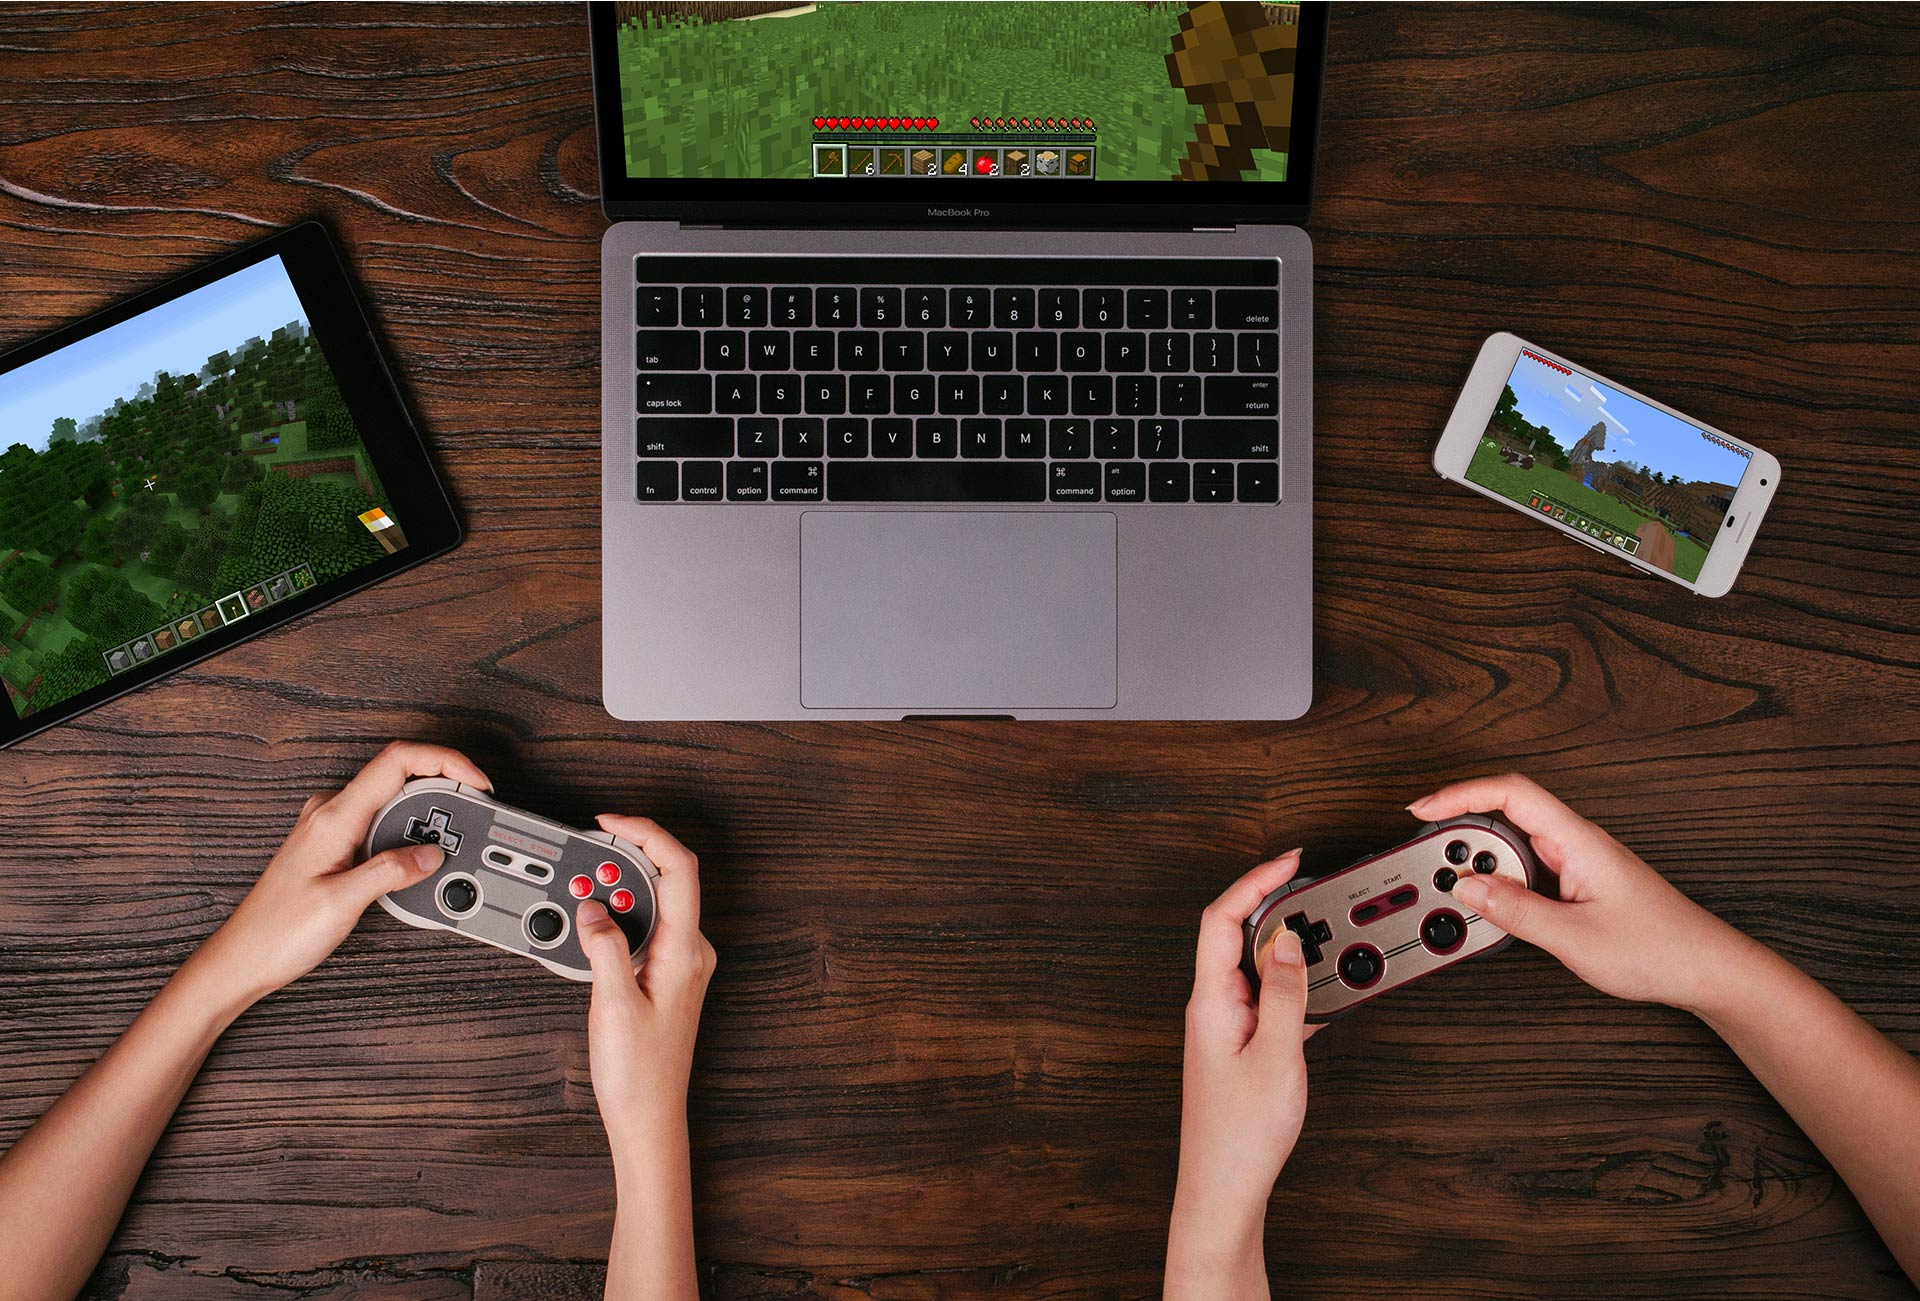 8bitdo F30 Pro Wireless Gamepad Bluetooth Controller for